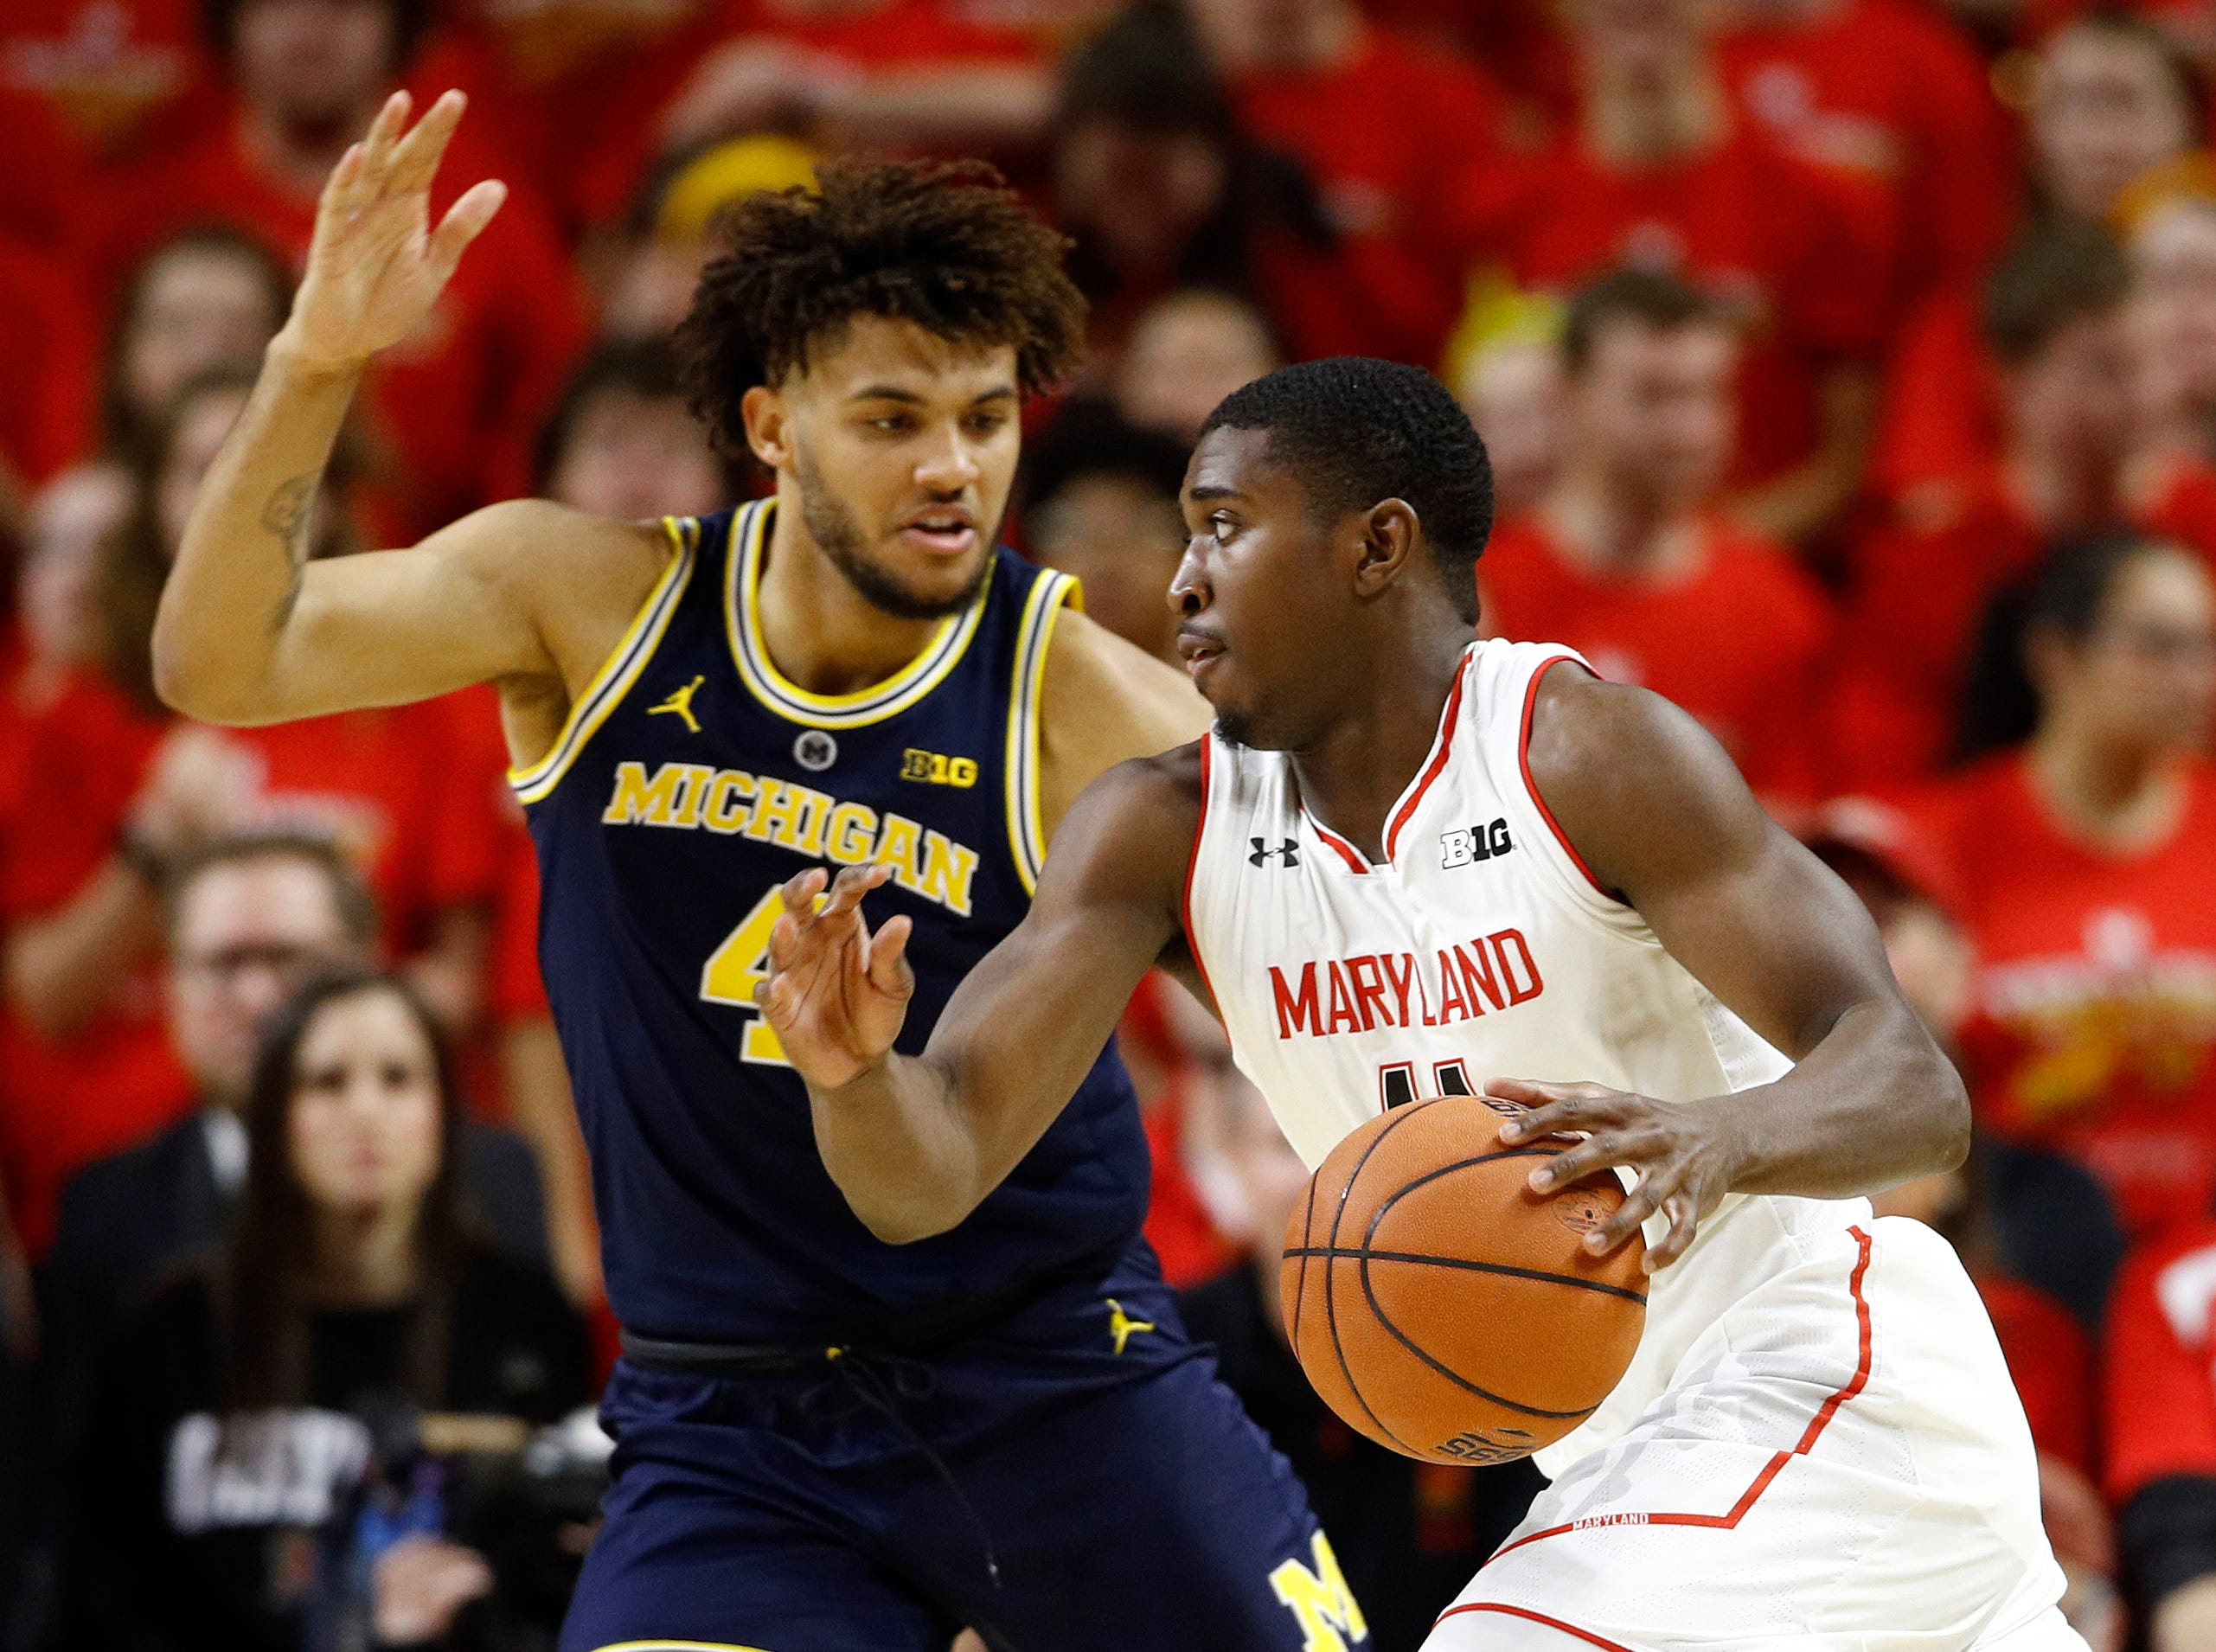 Maryland guard Darryl Morsell, right, drives against Michigan forward Isaiah Livers in the first half.